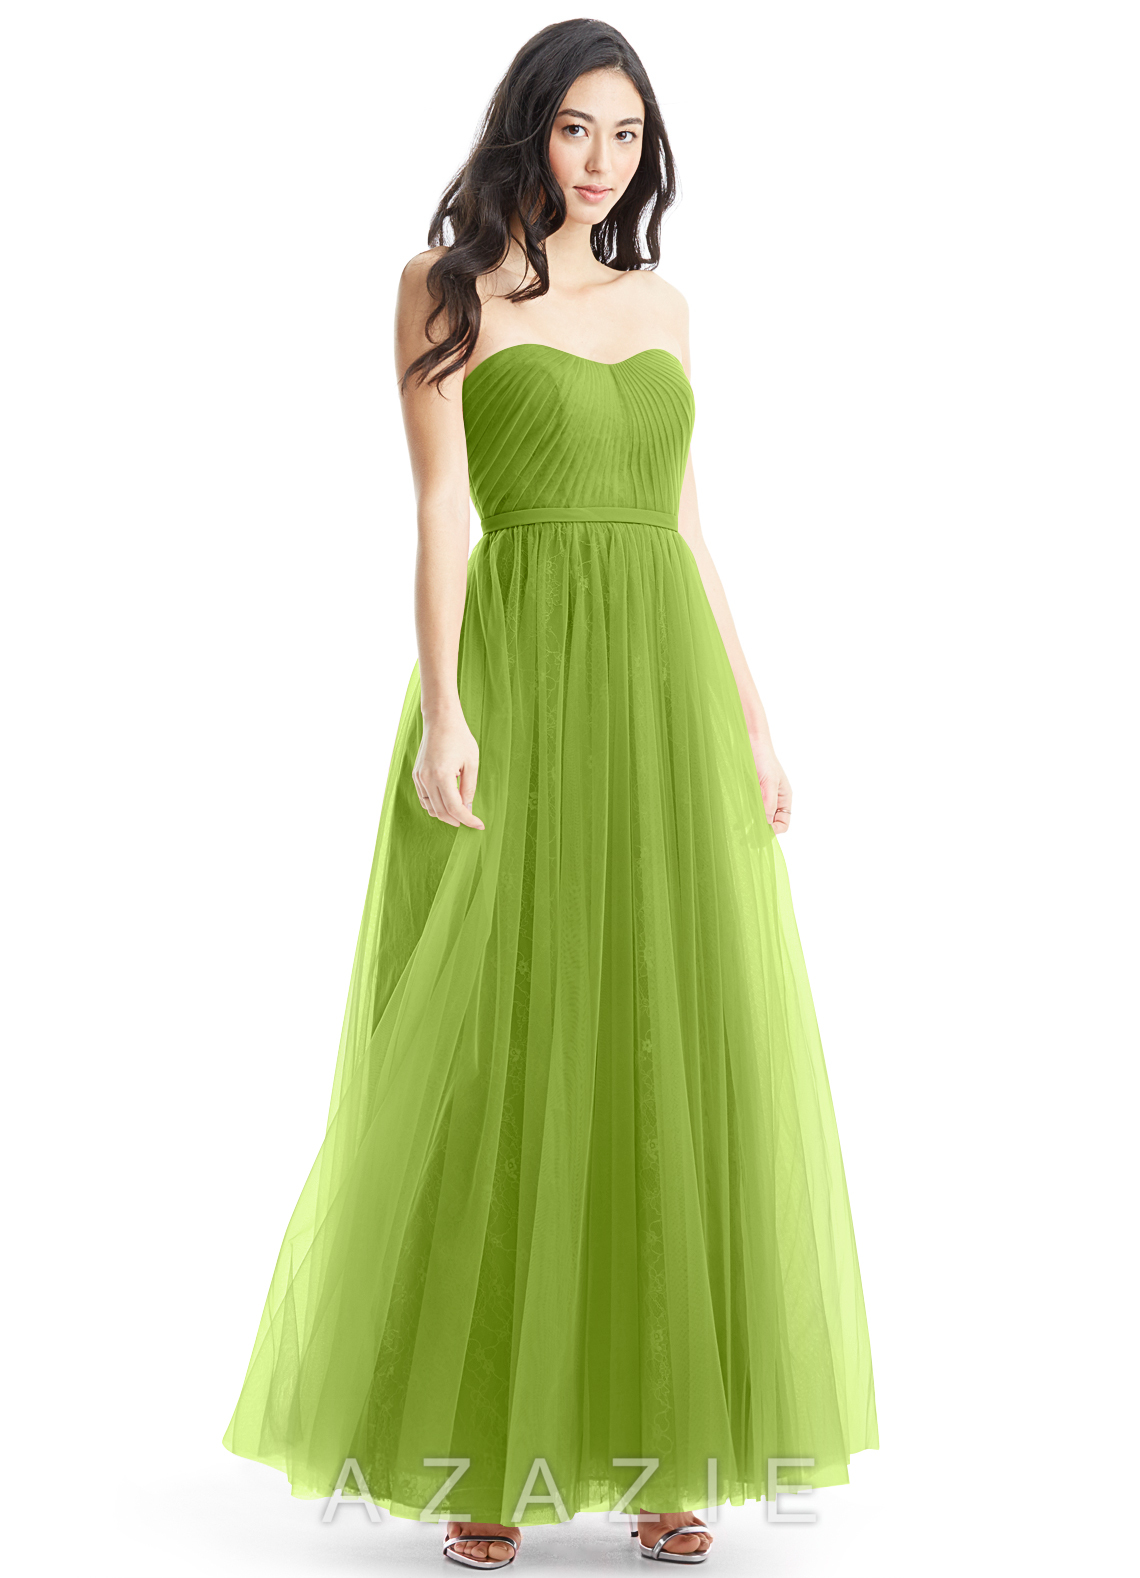 Azazie kayley bridesmaid dress azazie color clover ombrellifo Choice Image